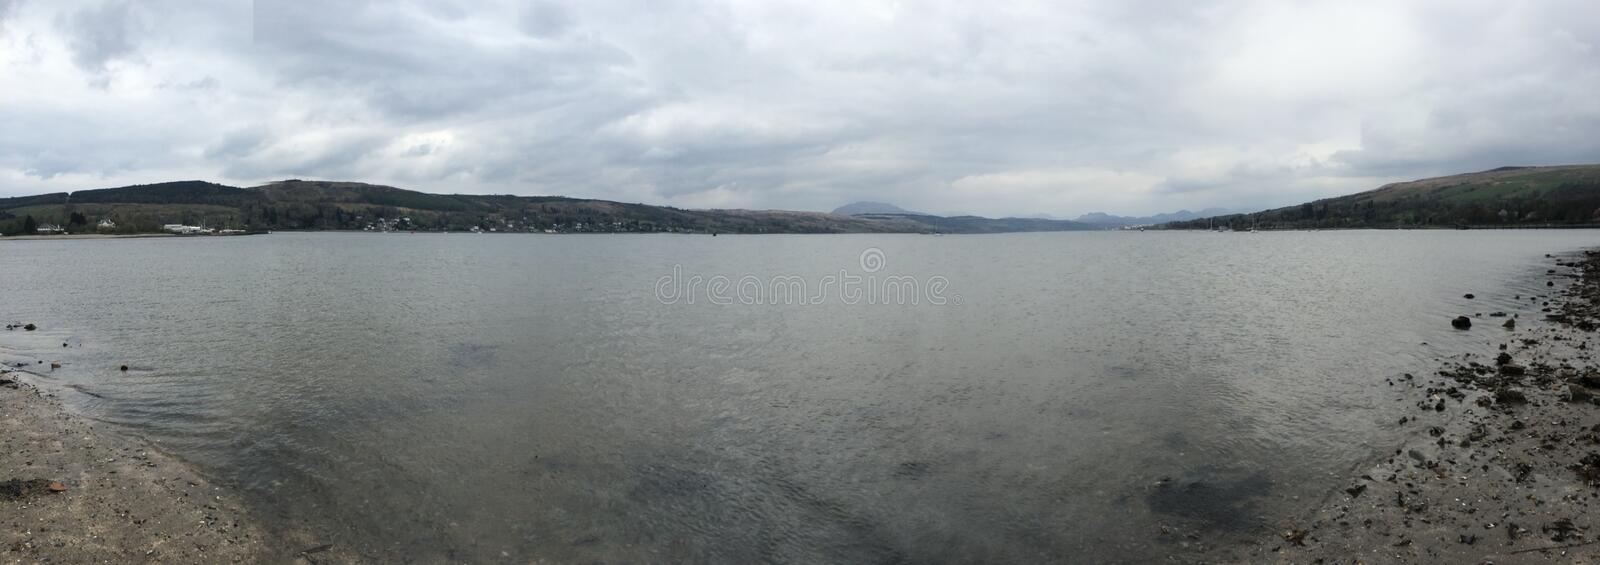 Rhu, Helensburgh, Scotland royalty free stock photo